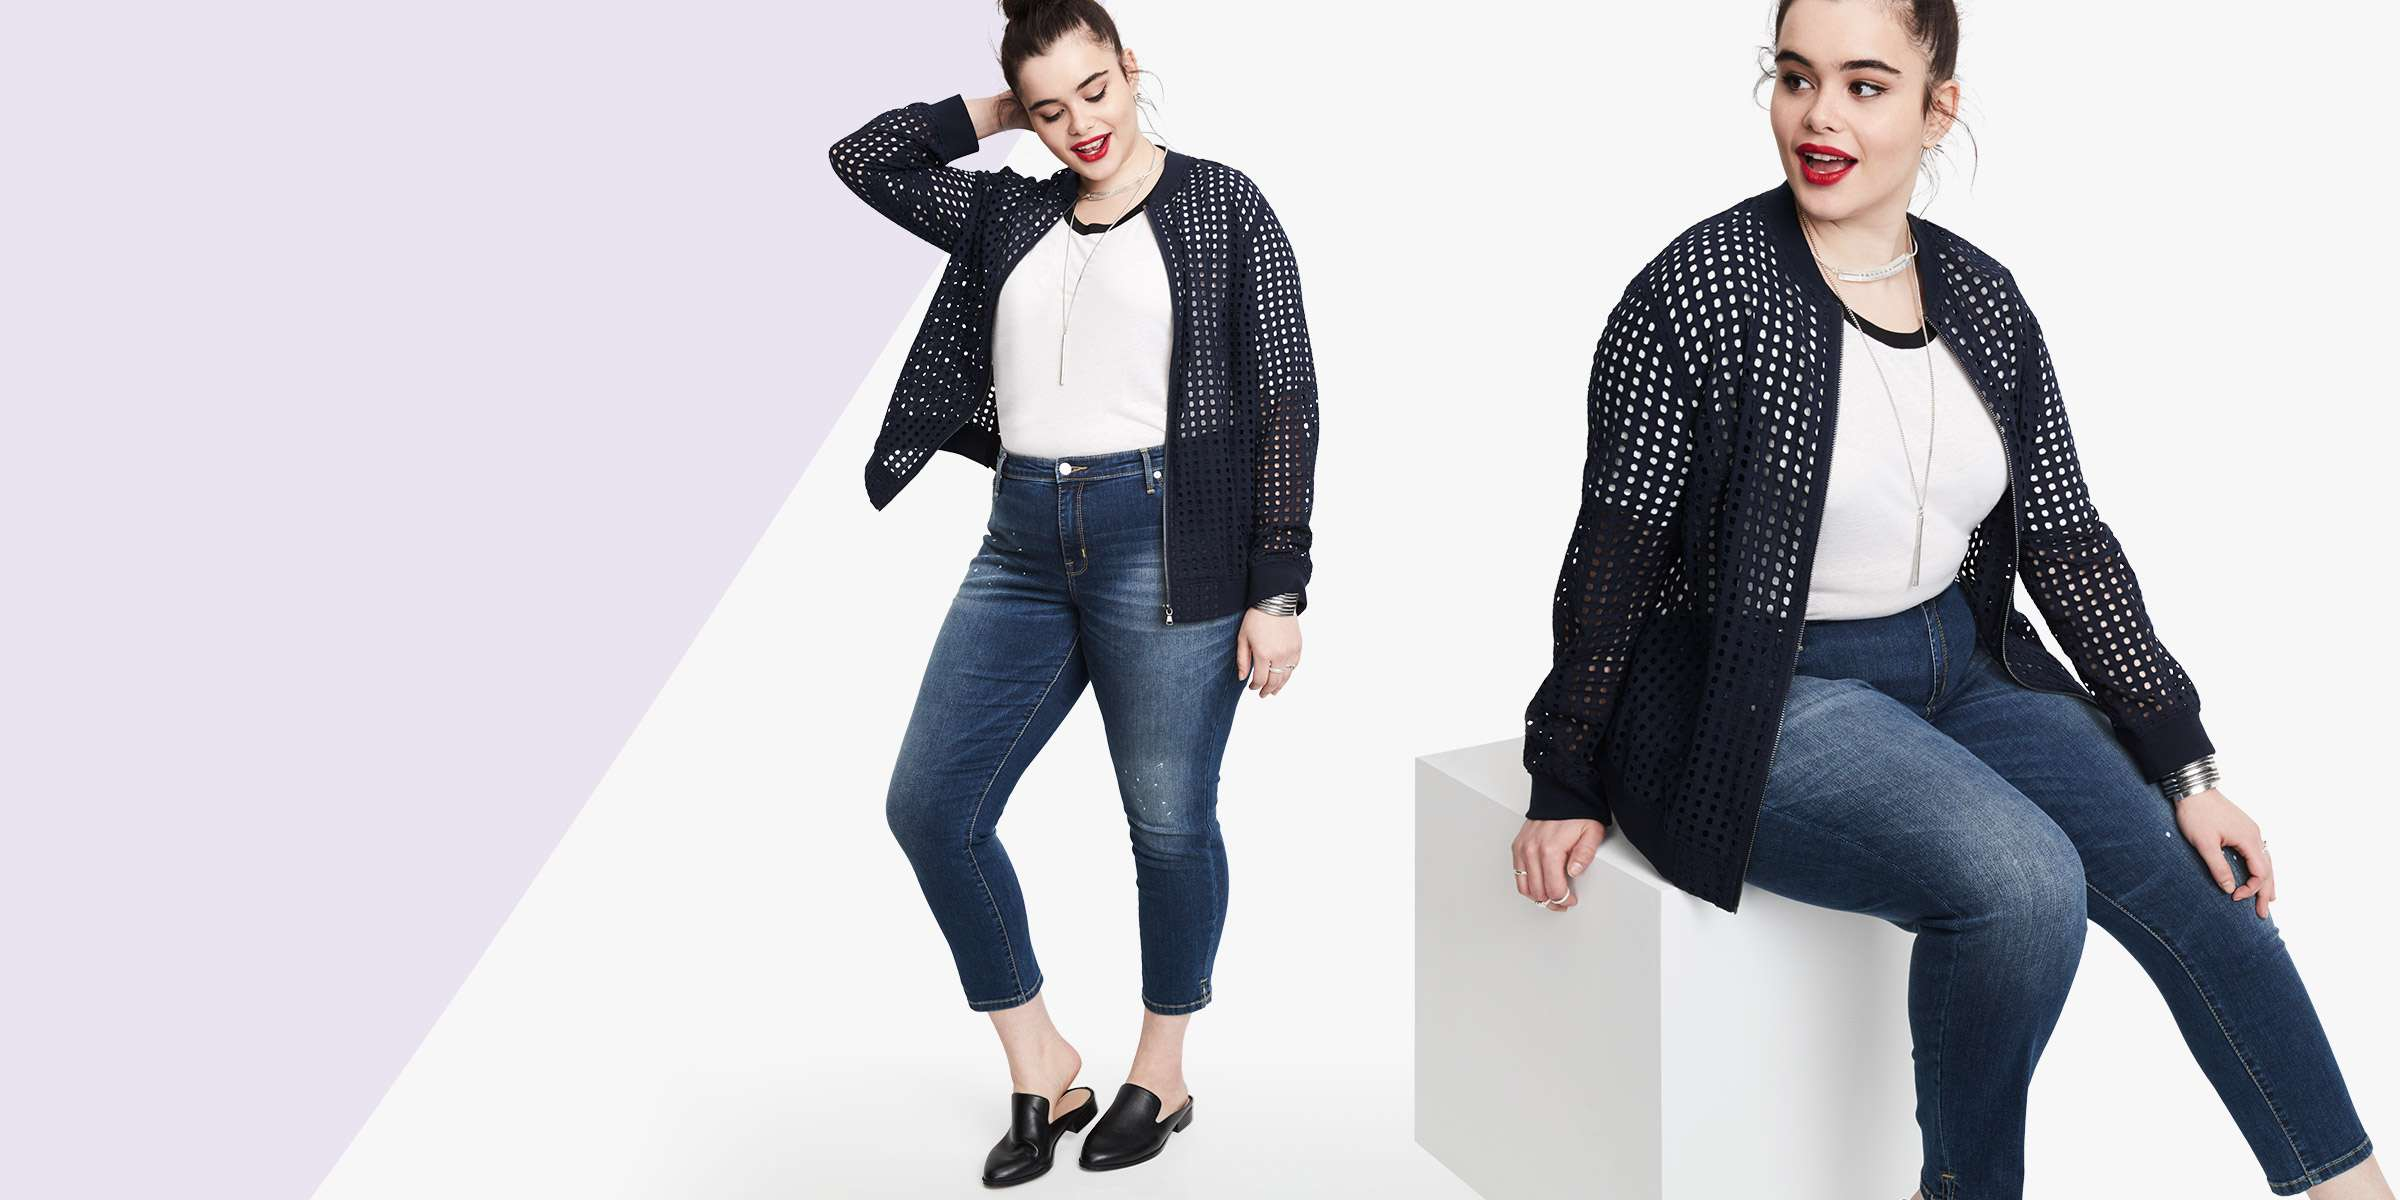 f571eb5118d Spring Style  5 Fly Plus Size Denim Trends To Rock This Season!